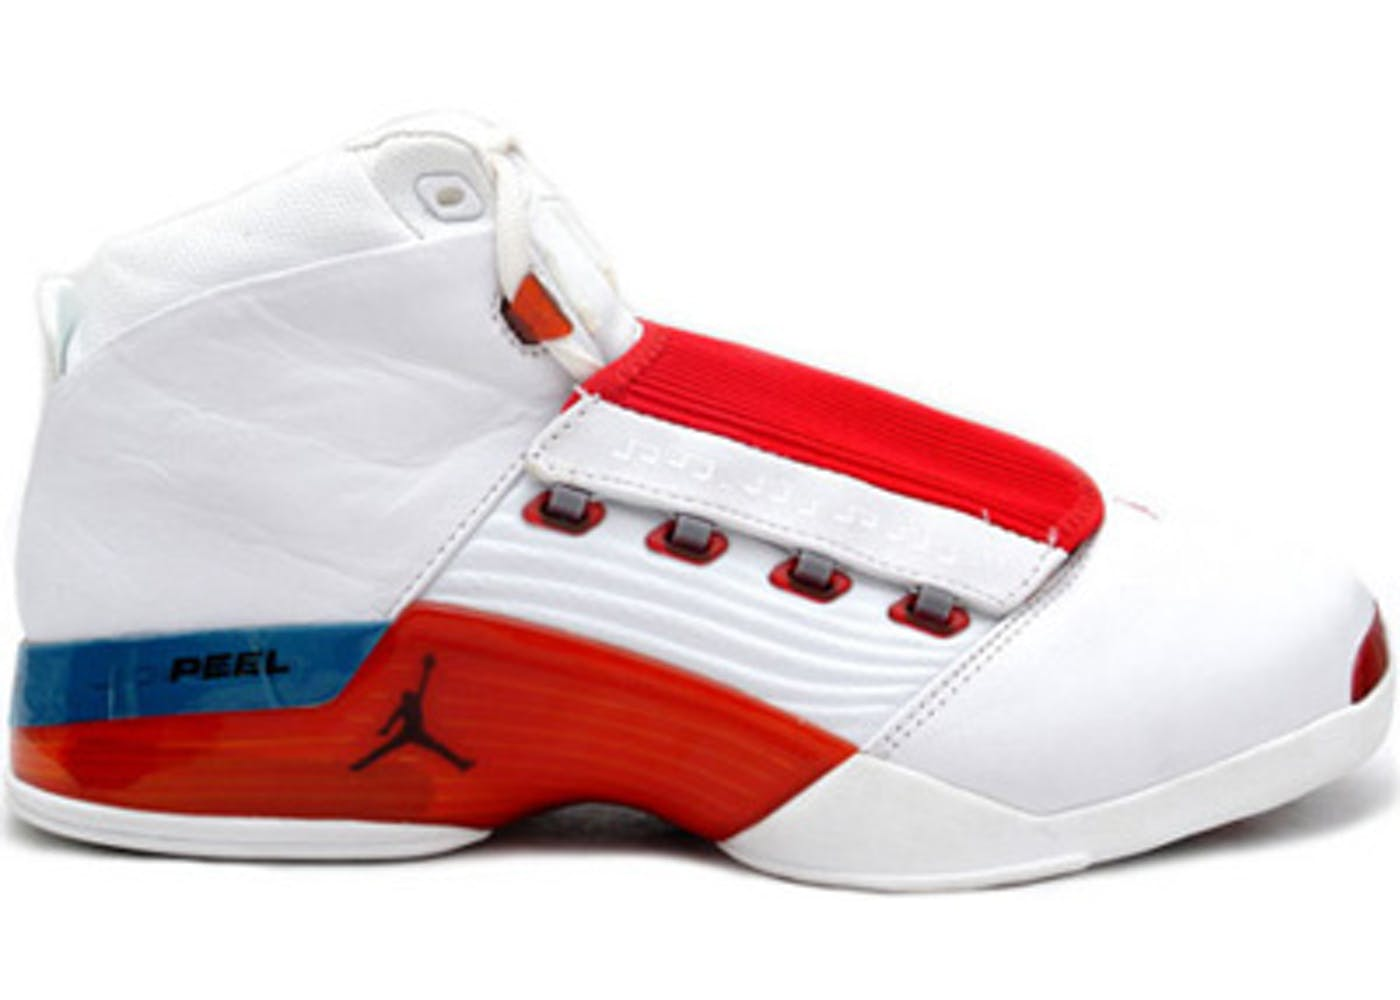 ae1db7e20923 Jordan 17 OG White Varsity Red - 0